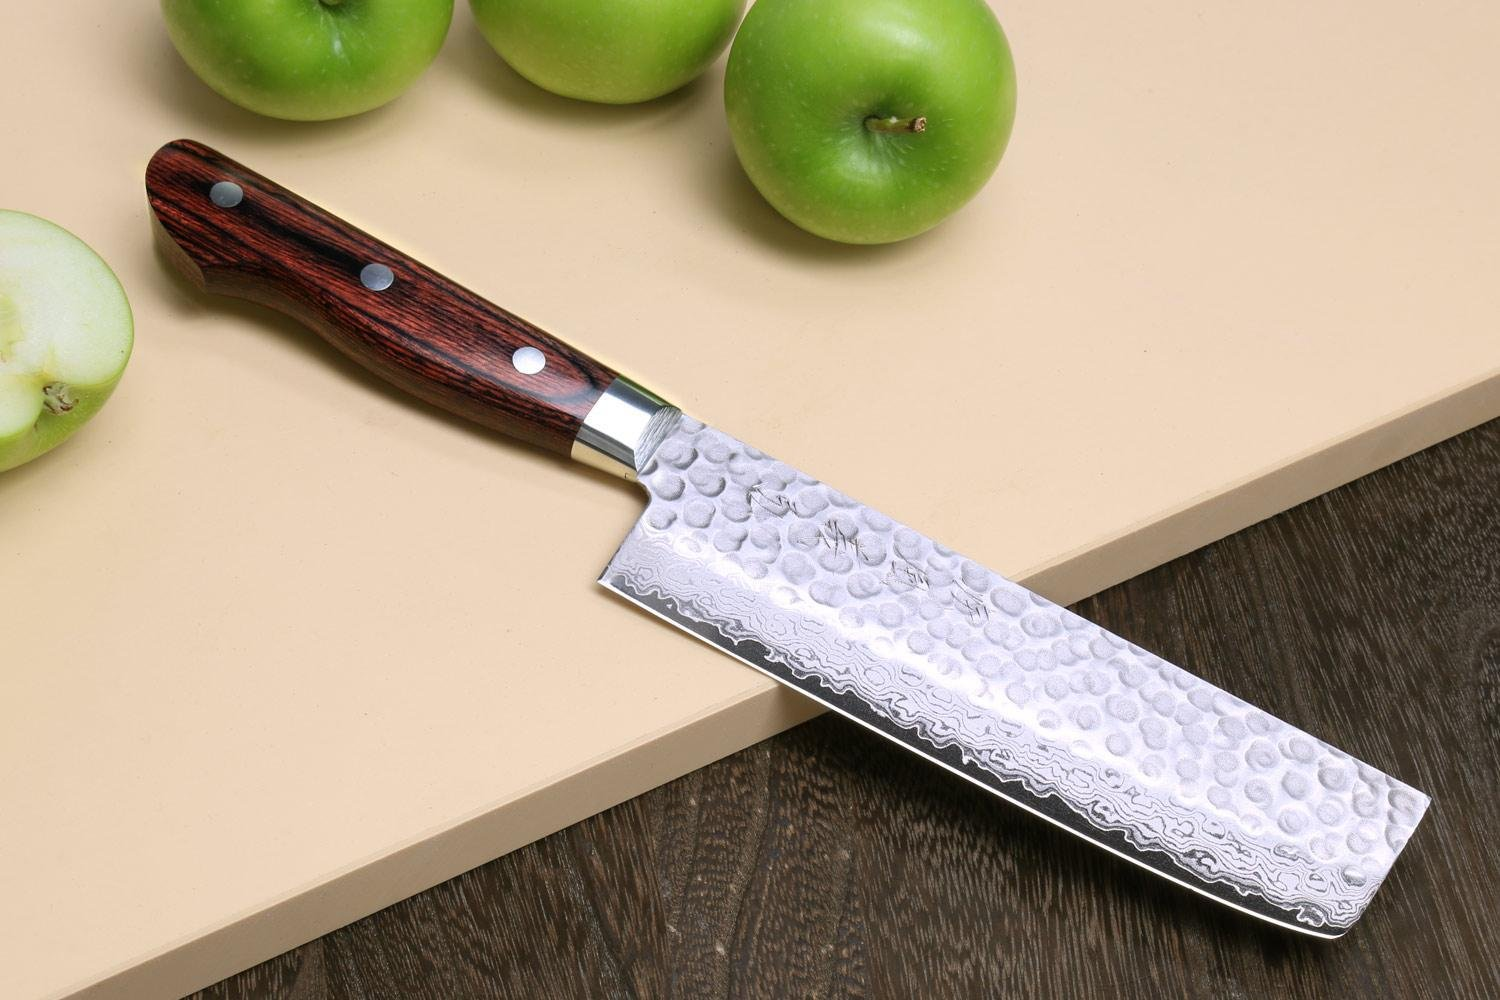 Yoshihiro VG10 16 Layers Hammered Damascus Nakiri Japanese Vegetable Chefs Knife 6 inch 1st Edition